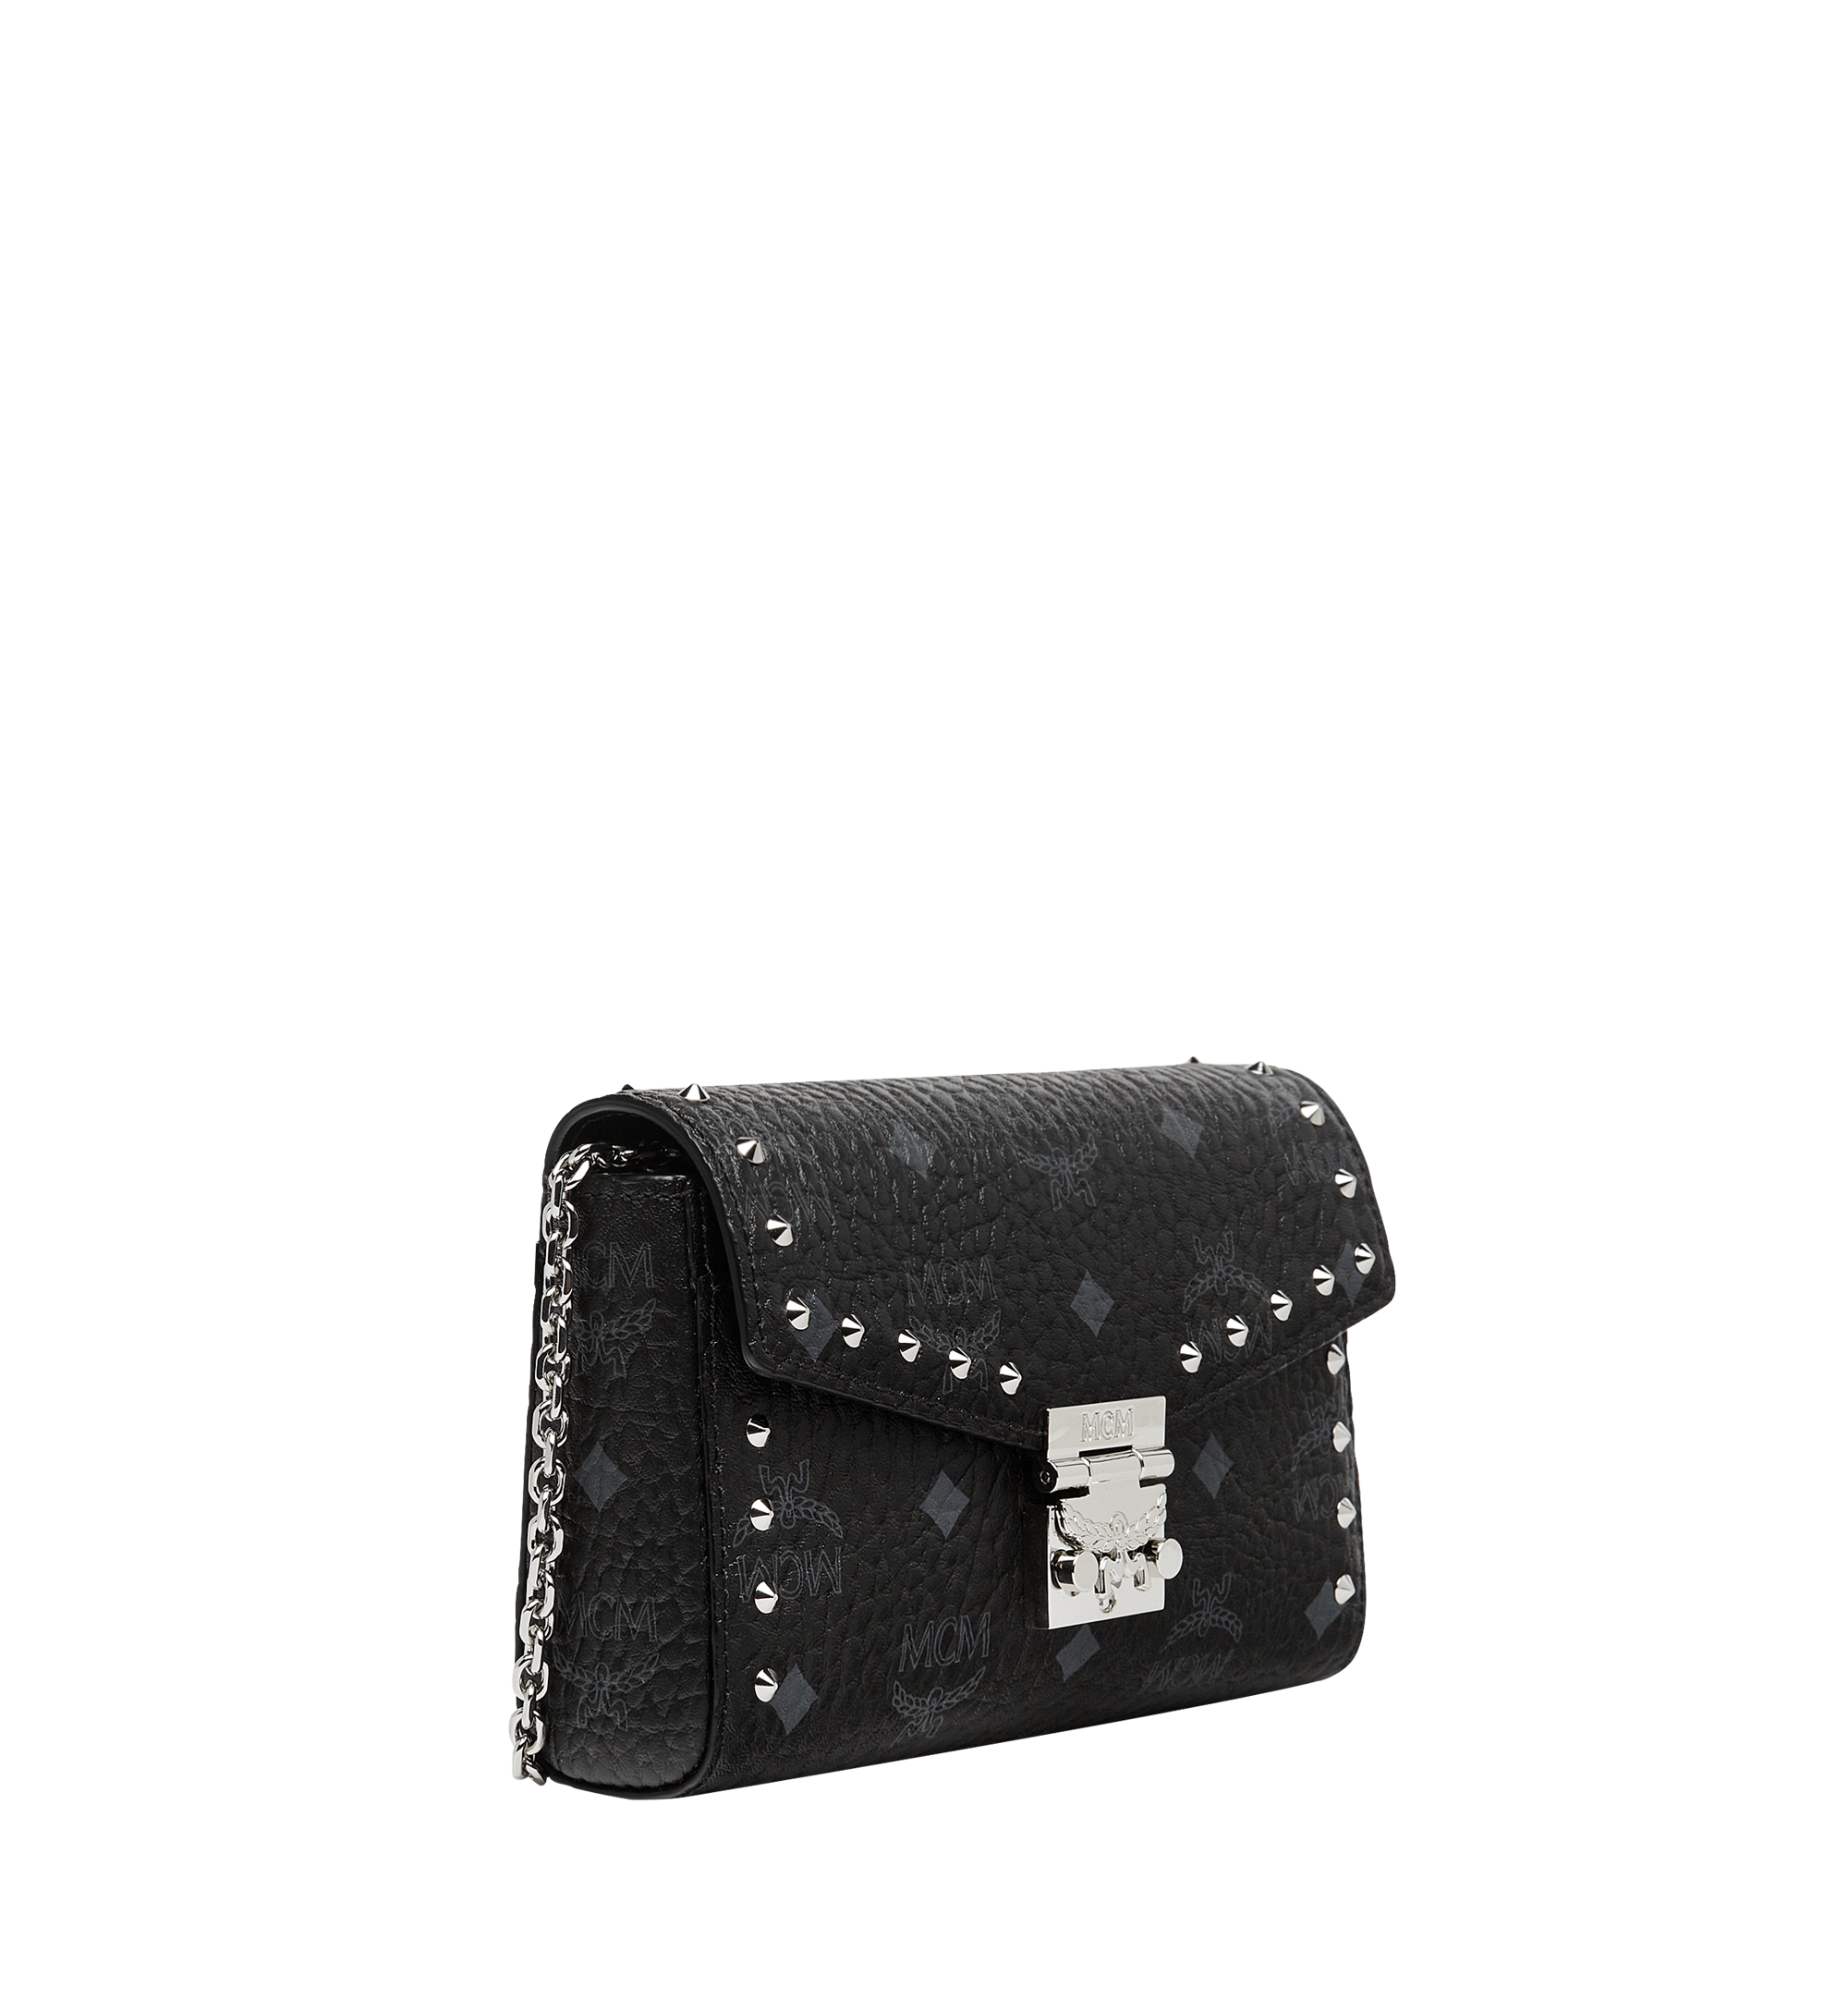 MCM Millie Flap Crossbody in Studded Outline Visetos Black MYZ8AME25BK001 Alternate View 2